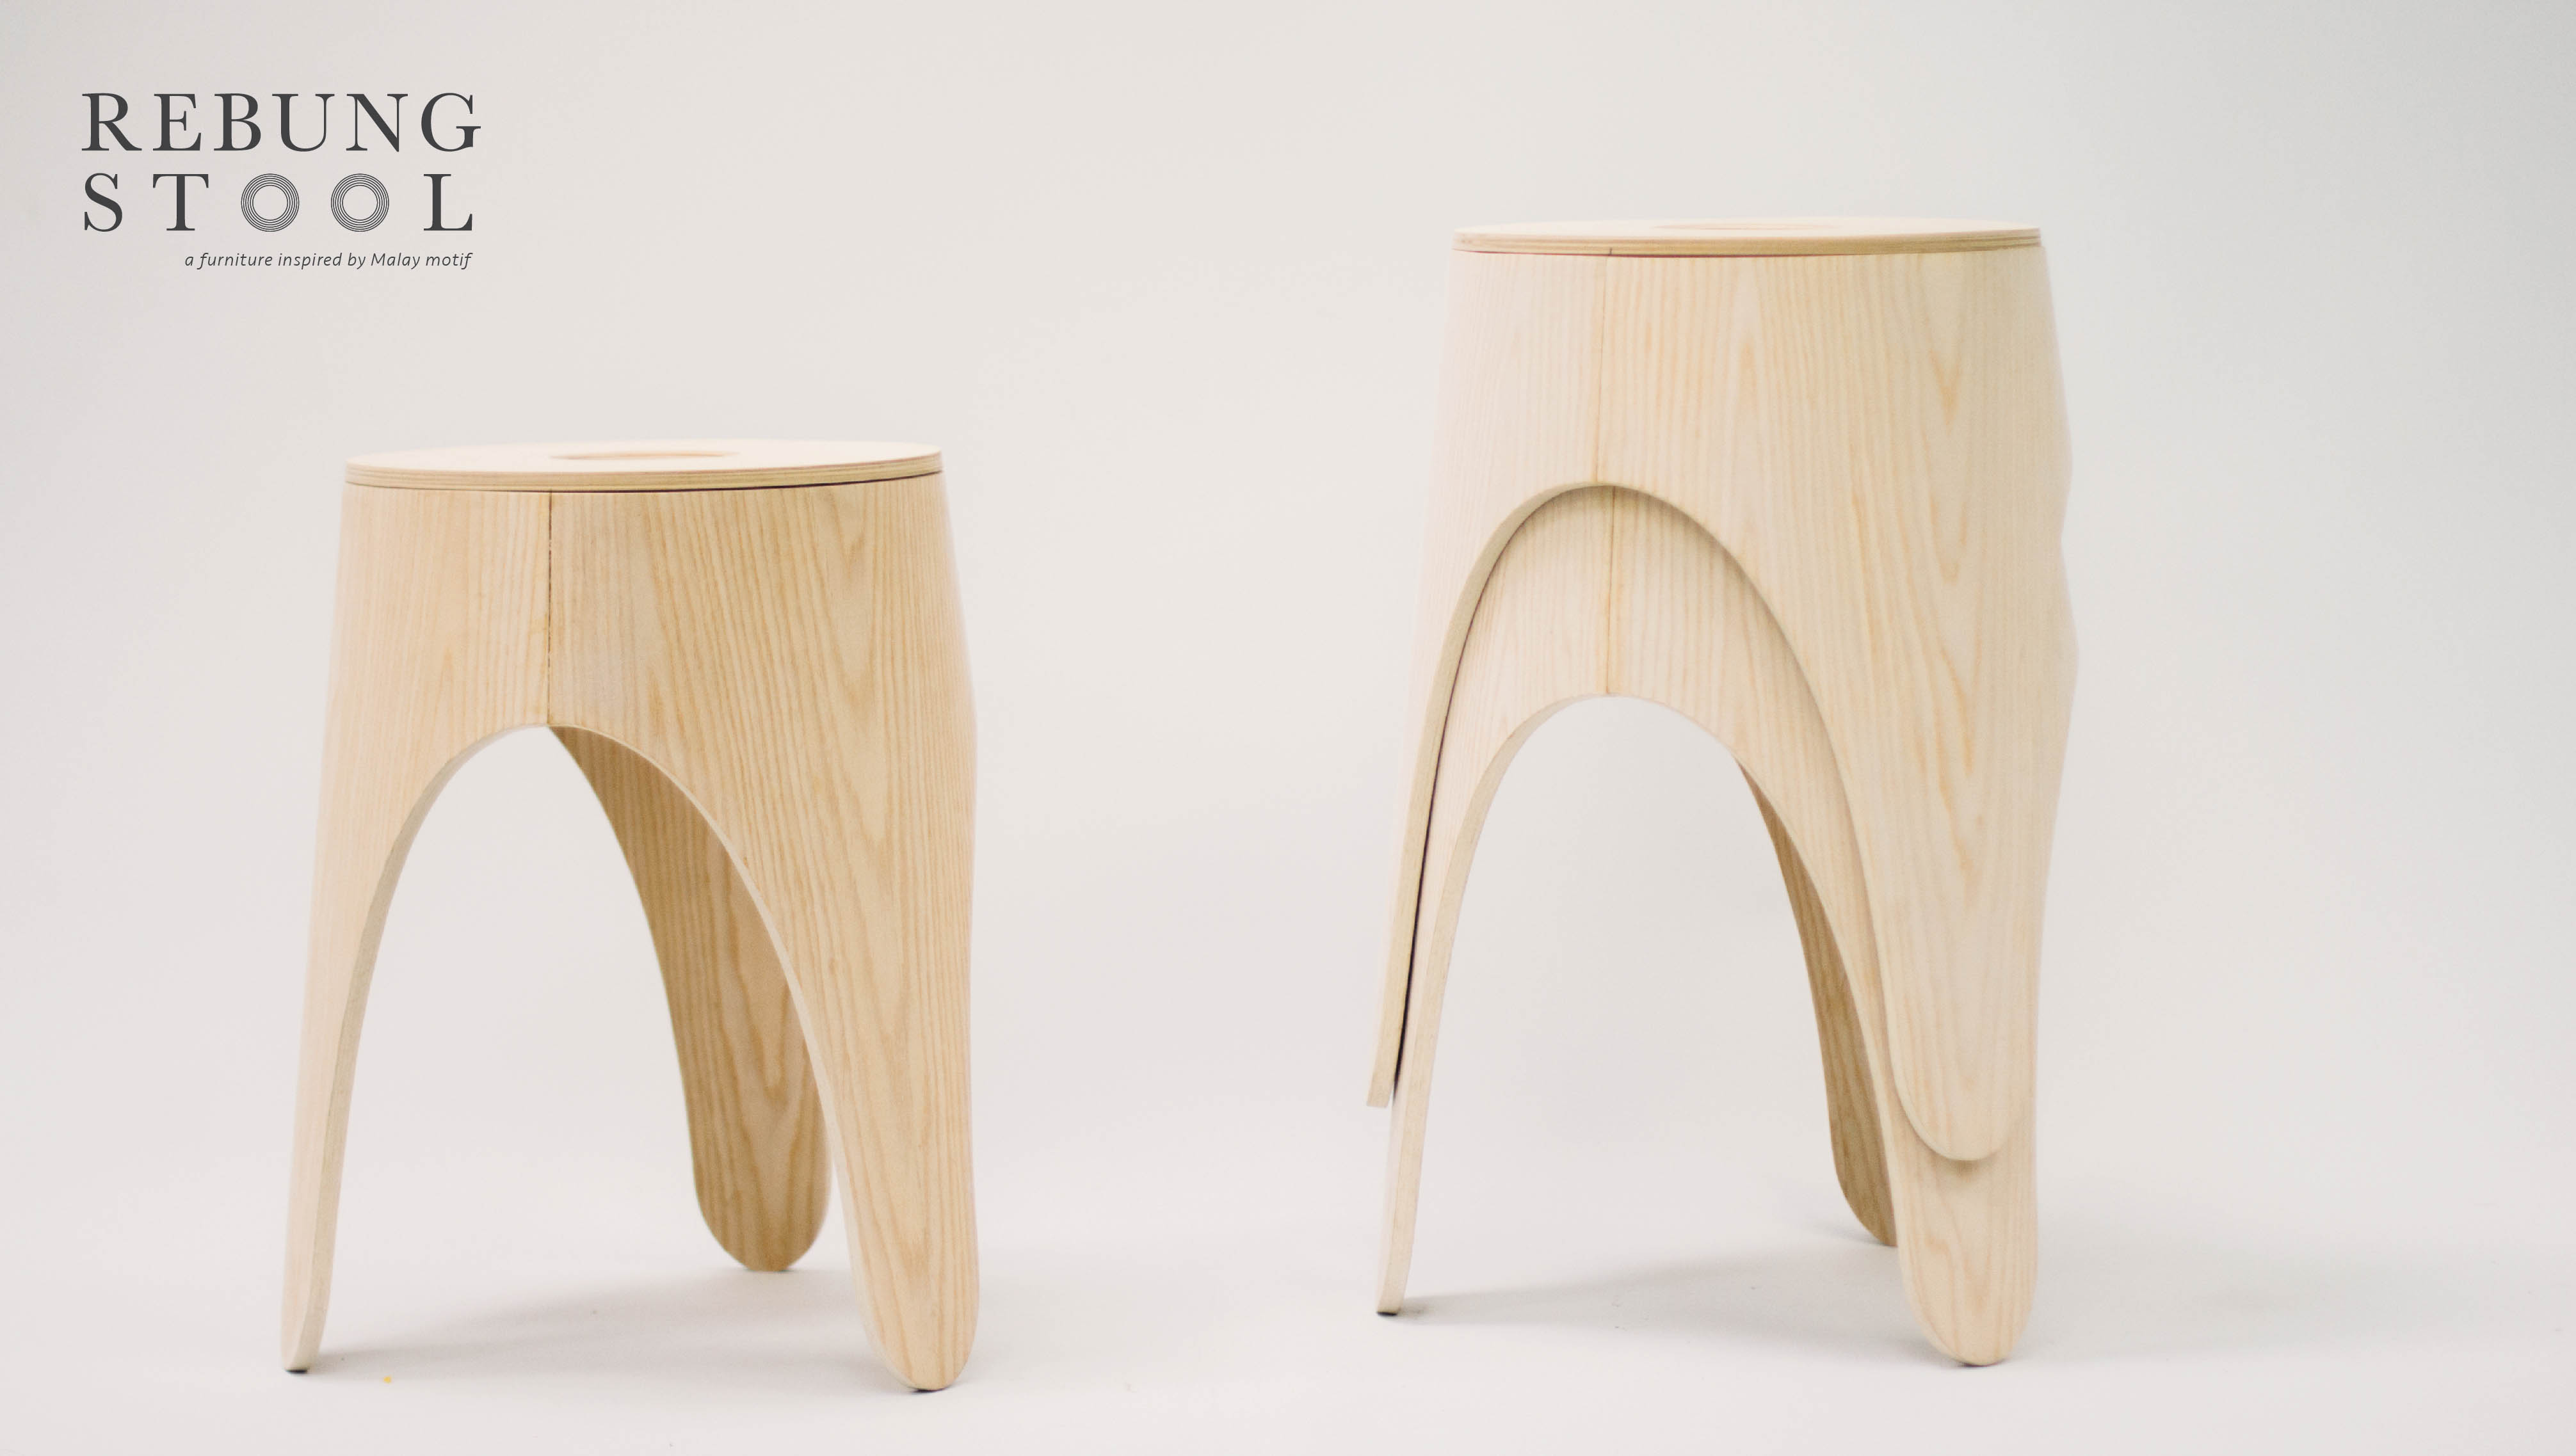 Rebung Stool at NTU ADM Portfolio